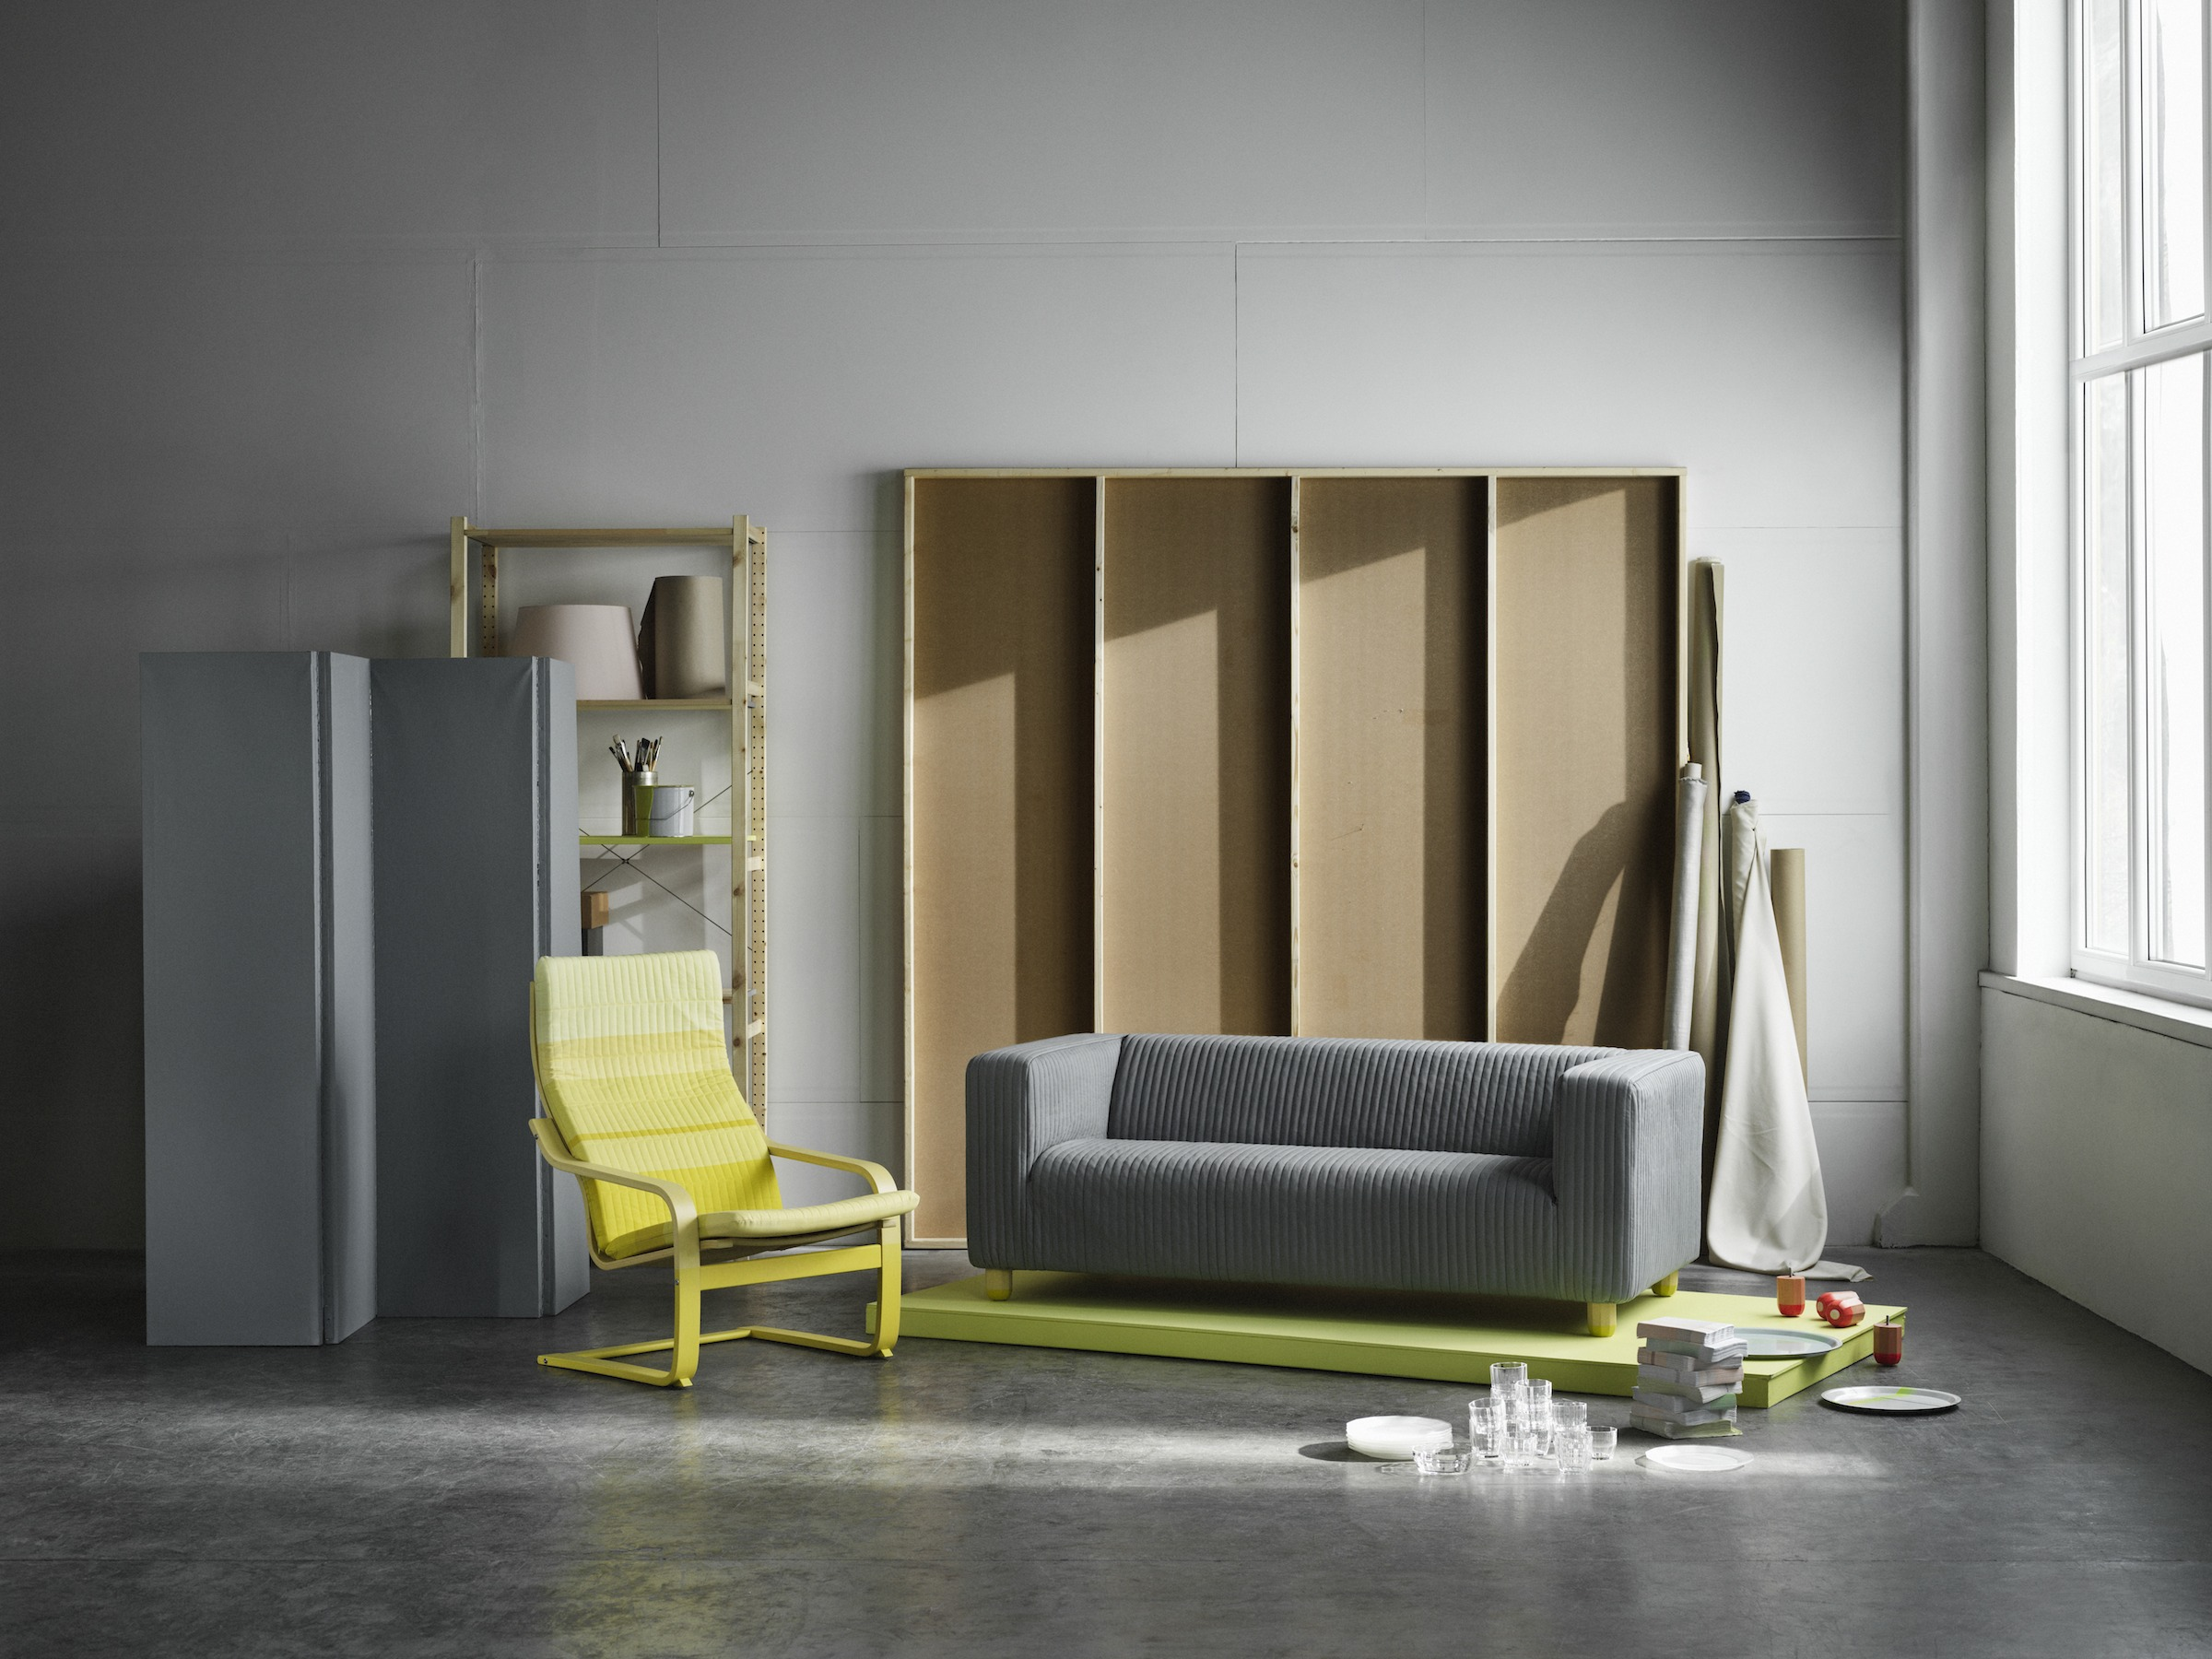 Ikea 'hacks' its iconic designs in new line